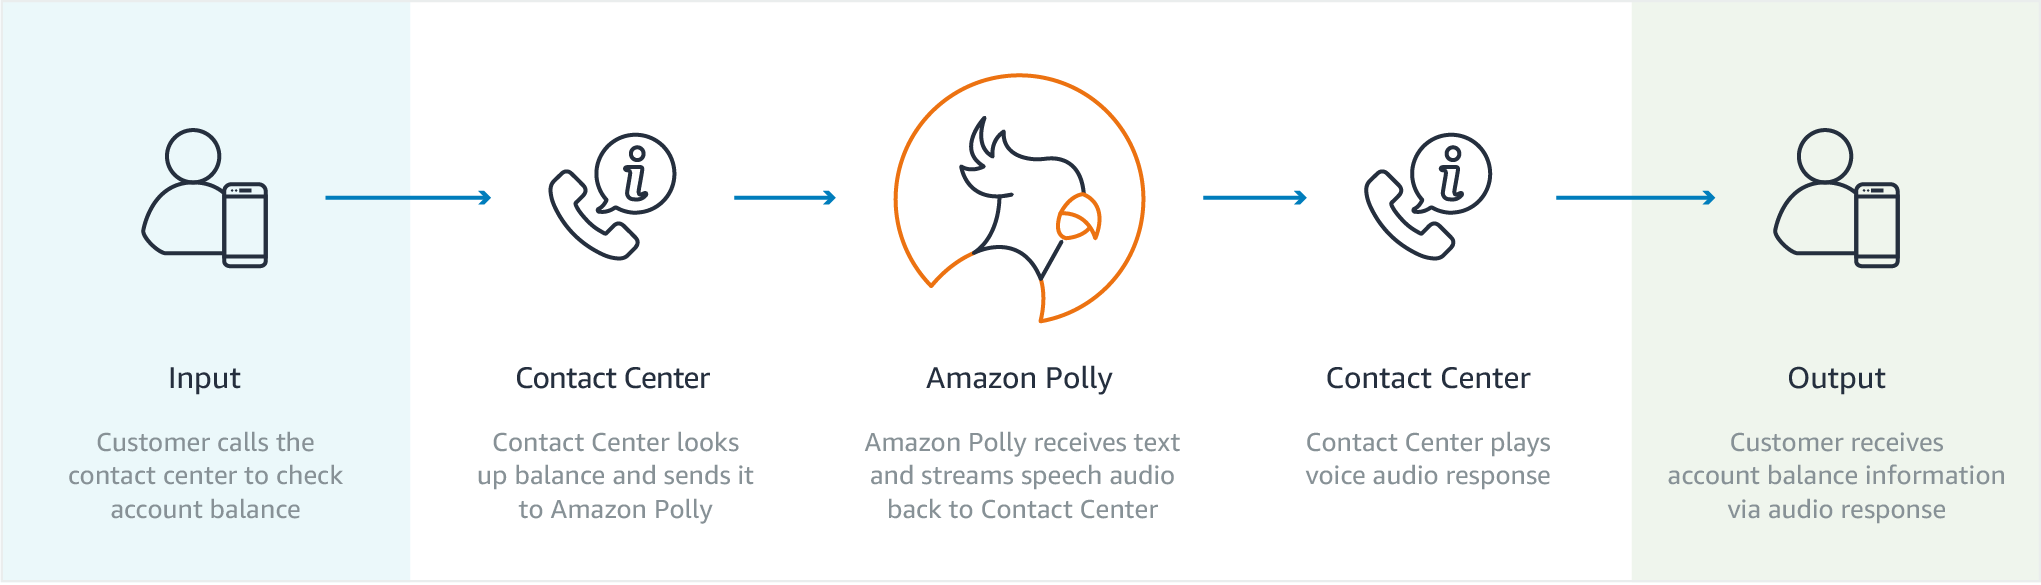 Polly-2-Customer_Contact_Center@2x